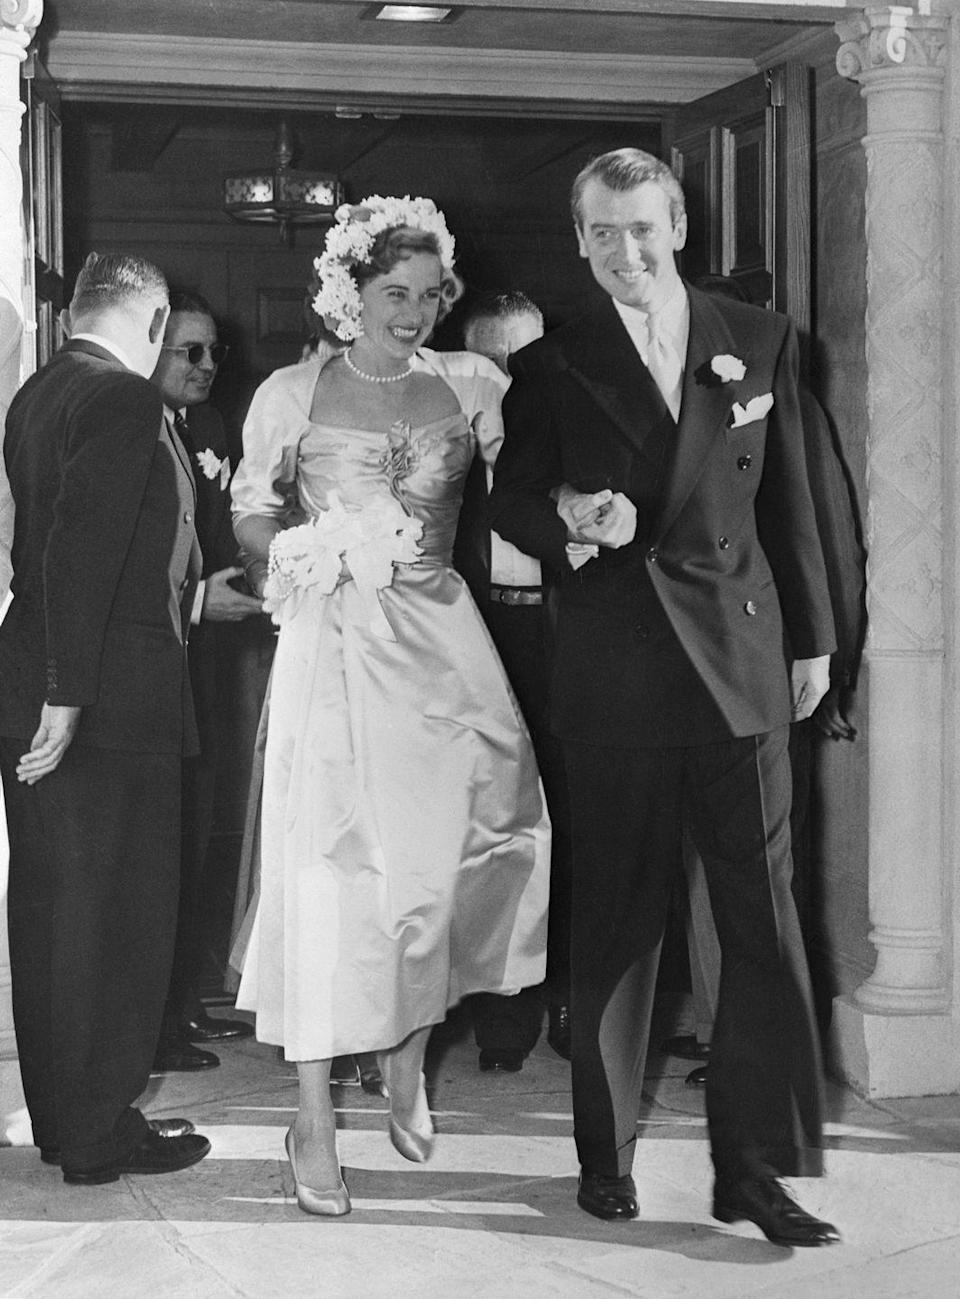 <p>Jimmy Stewart was known as Hollywood's proverbial bachelor until he traded in his lifestyle for socialite Gloria Hatrick McLean. The leading man wed McLean in Los Angeles at Brentwood Presbyterian Church in 1949. The couple remained married until McLean's death in 1994. </p>